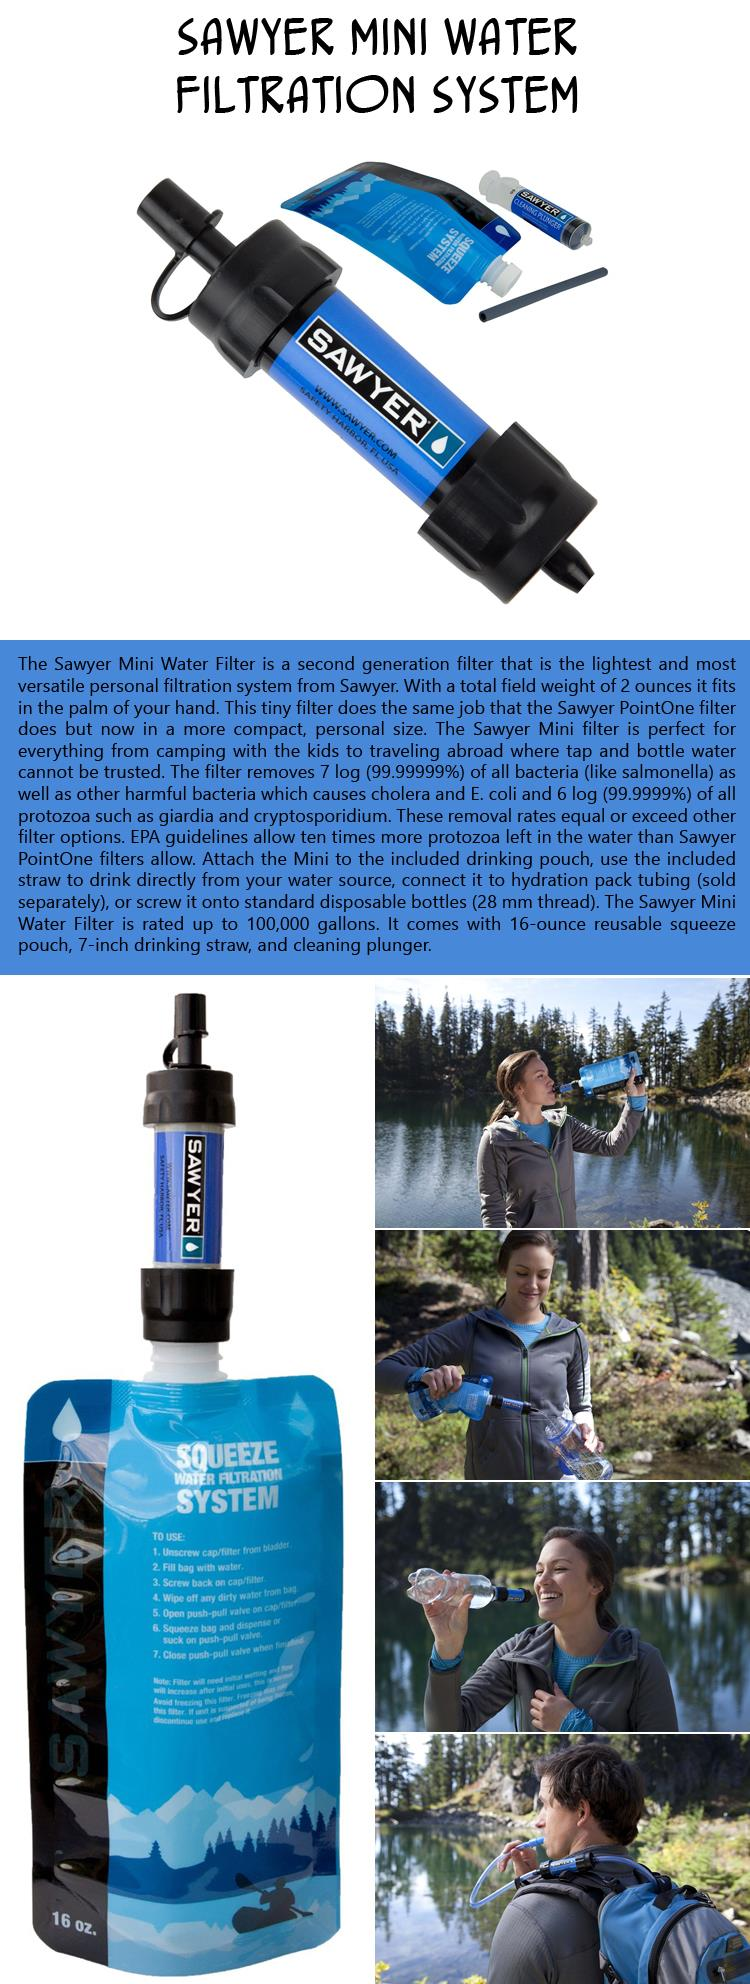 sawyer-mini-water-filtration-system